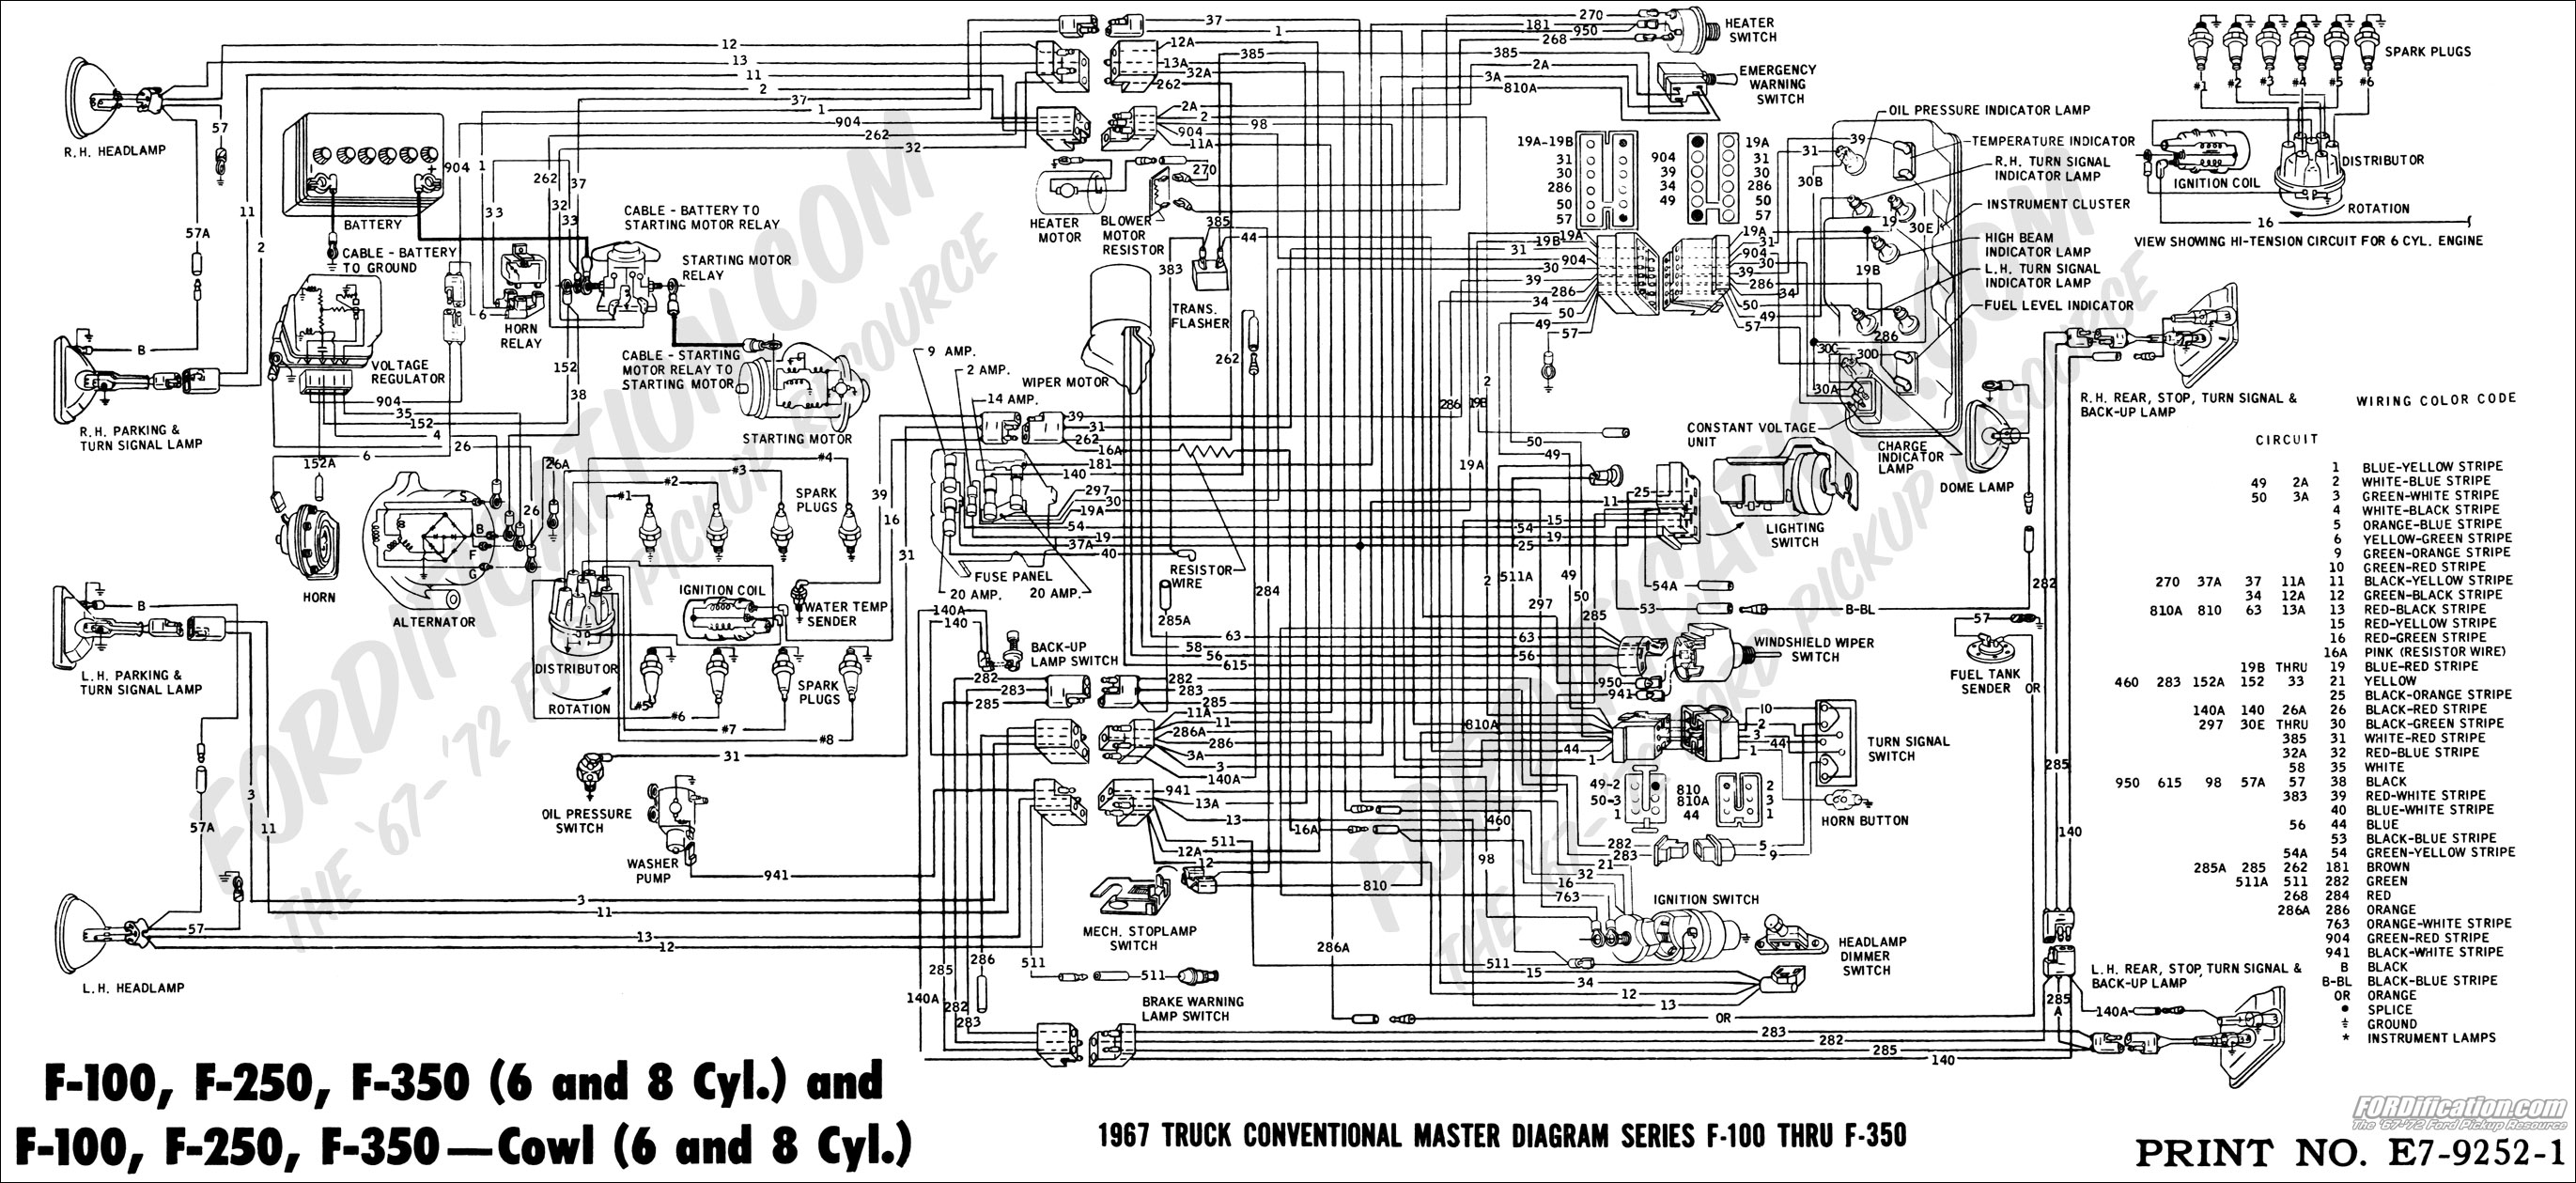 67masterdiagram ford truck technical drawings and schematics section h wiring f150 wiring schematic at pacquiaovsvargaslive.co